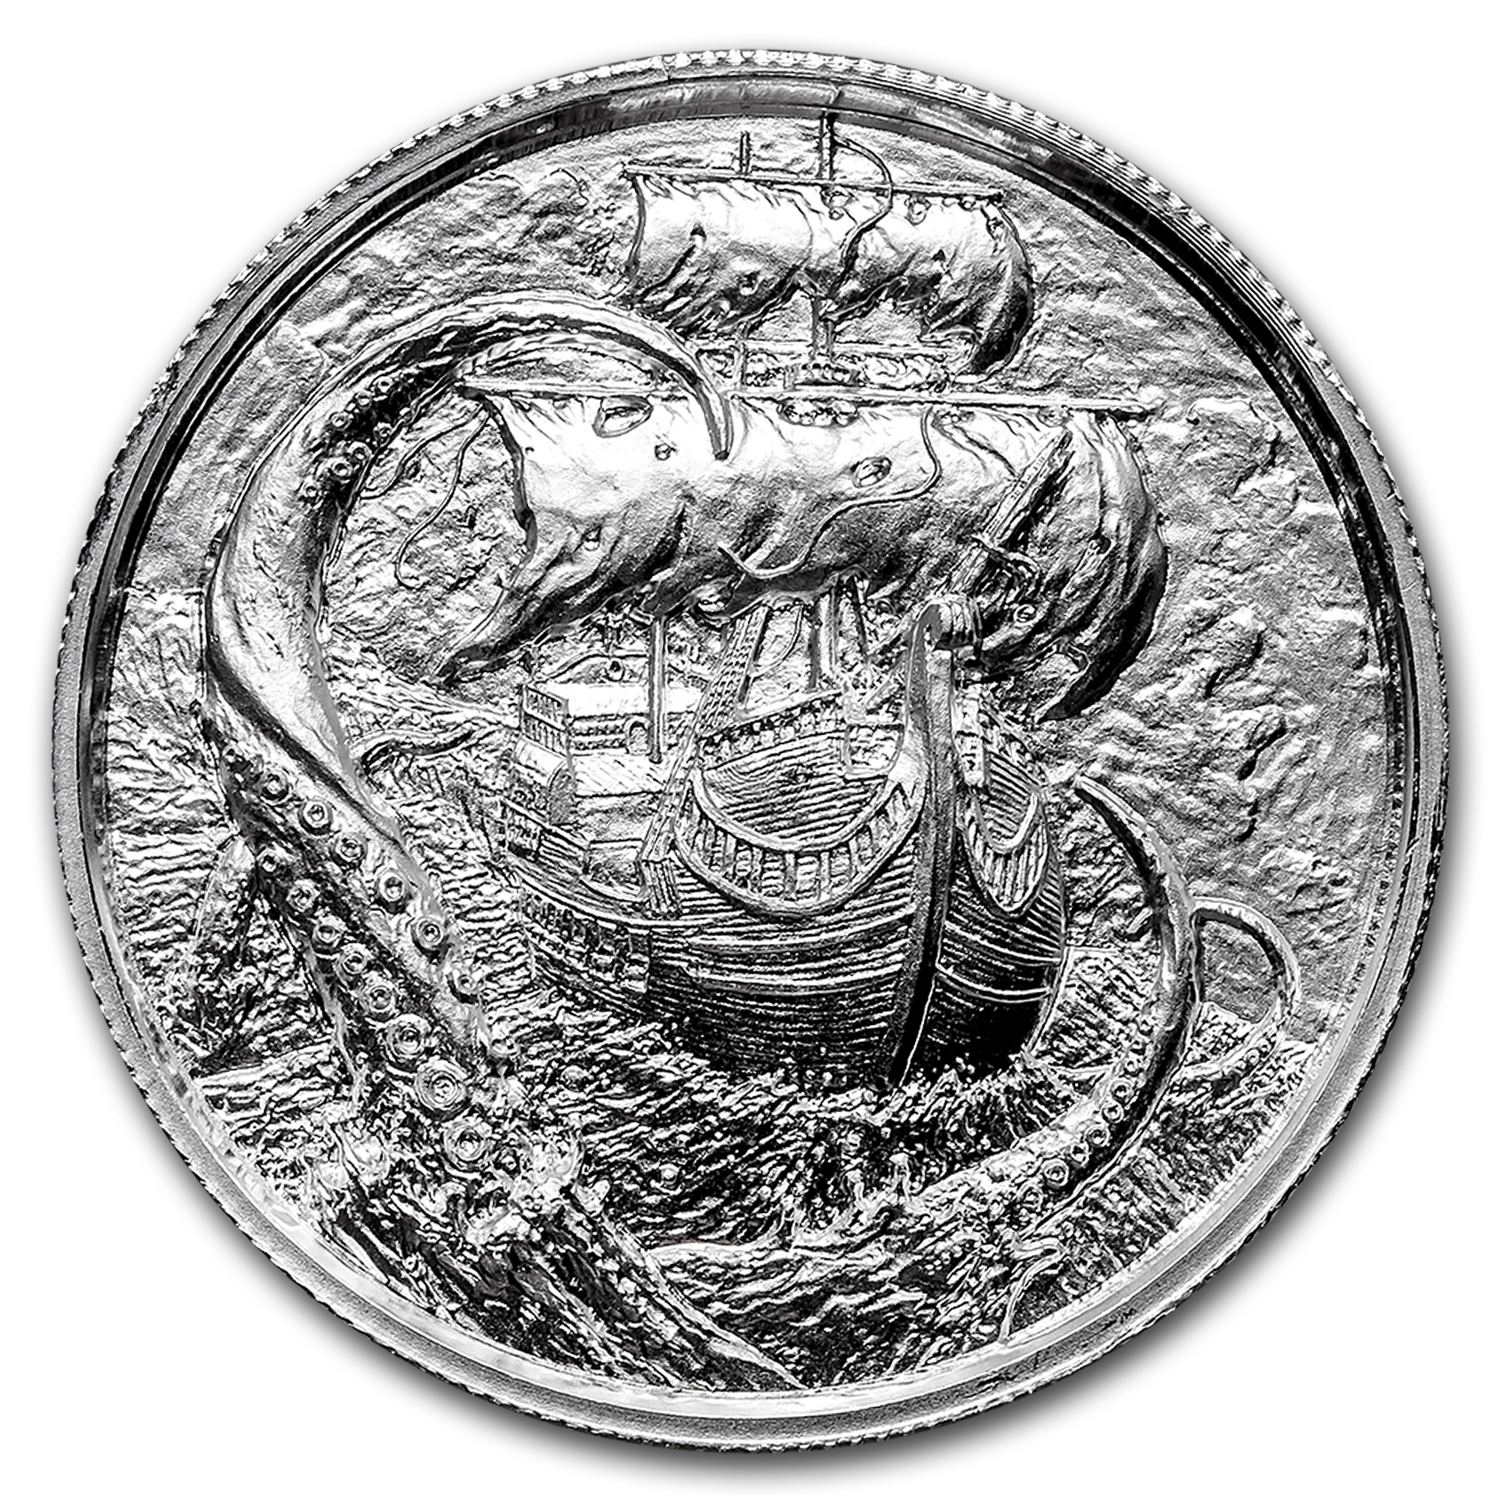 2 oz Silver Round - The Kraken (Ultra High Relief)